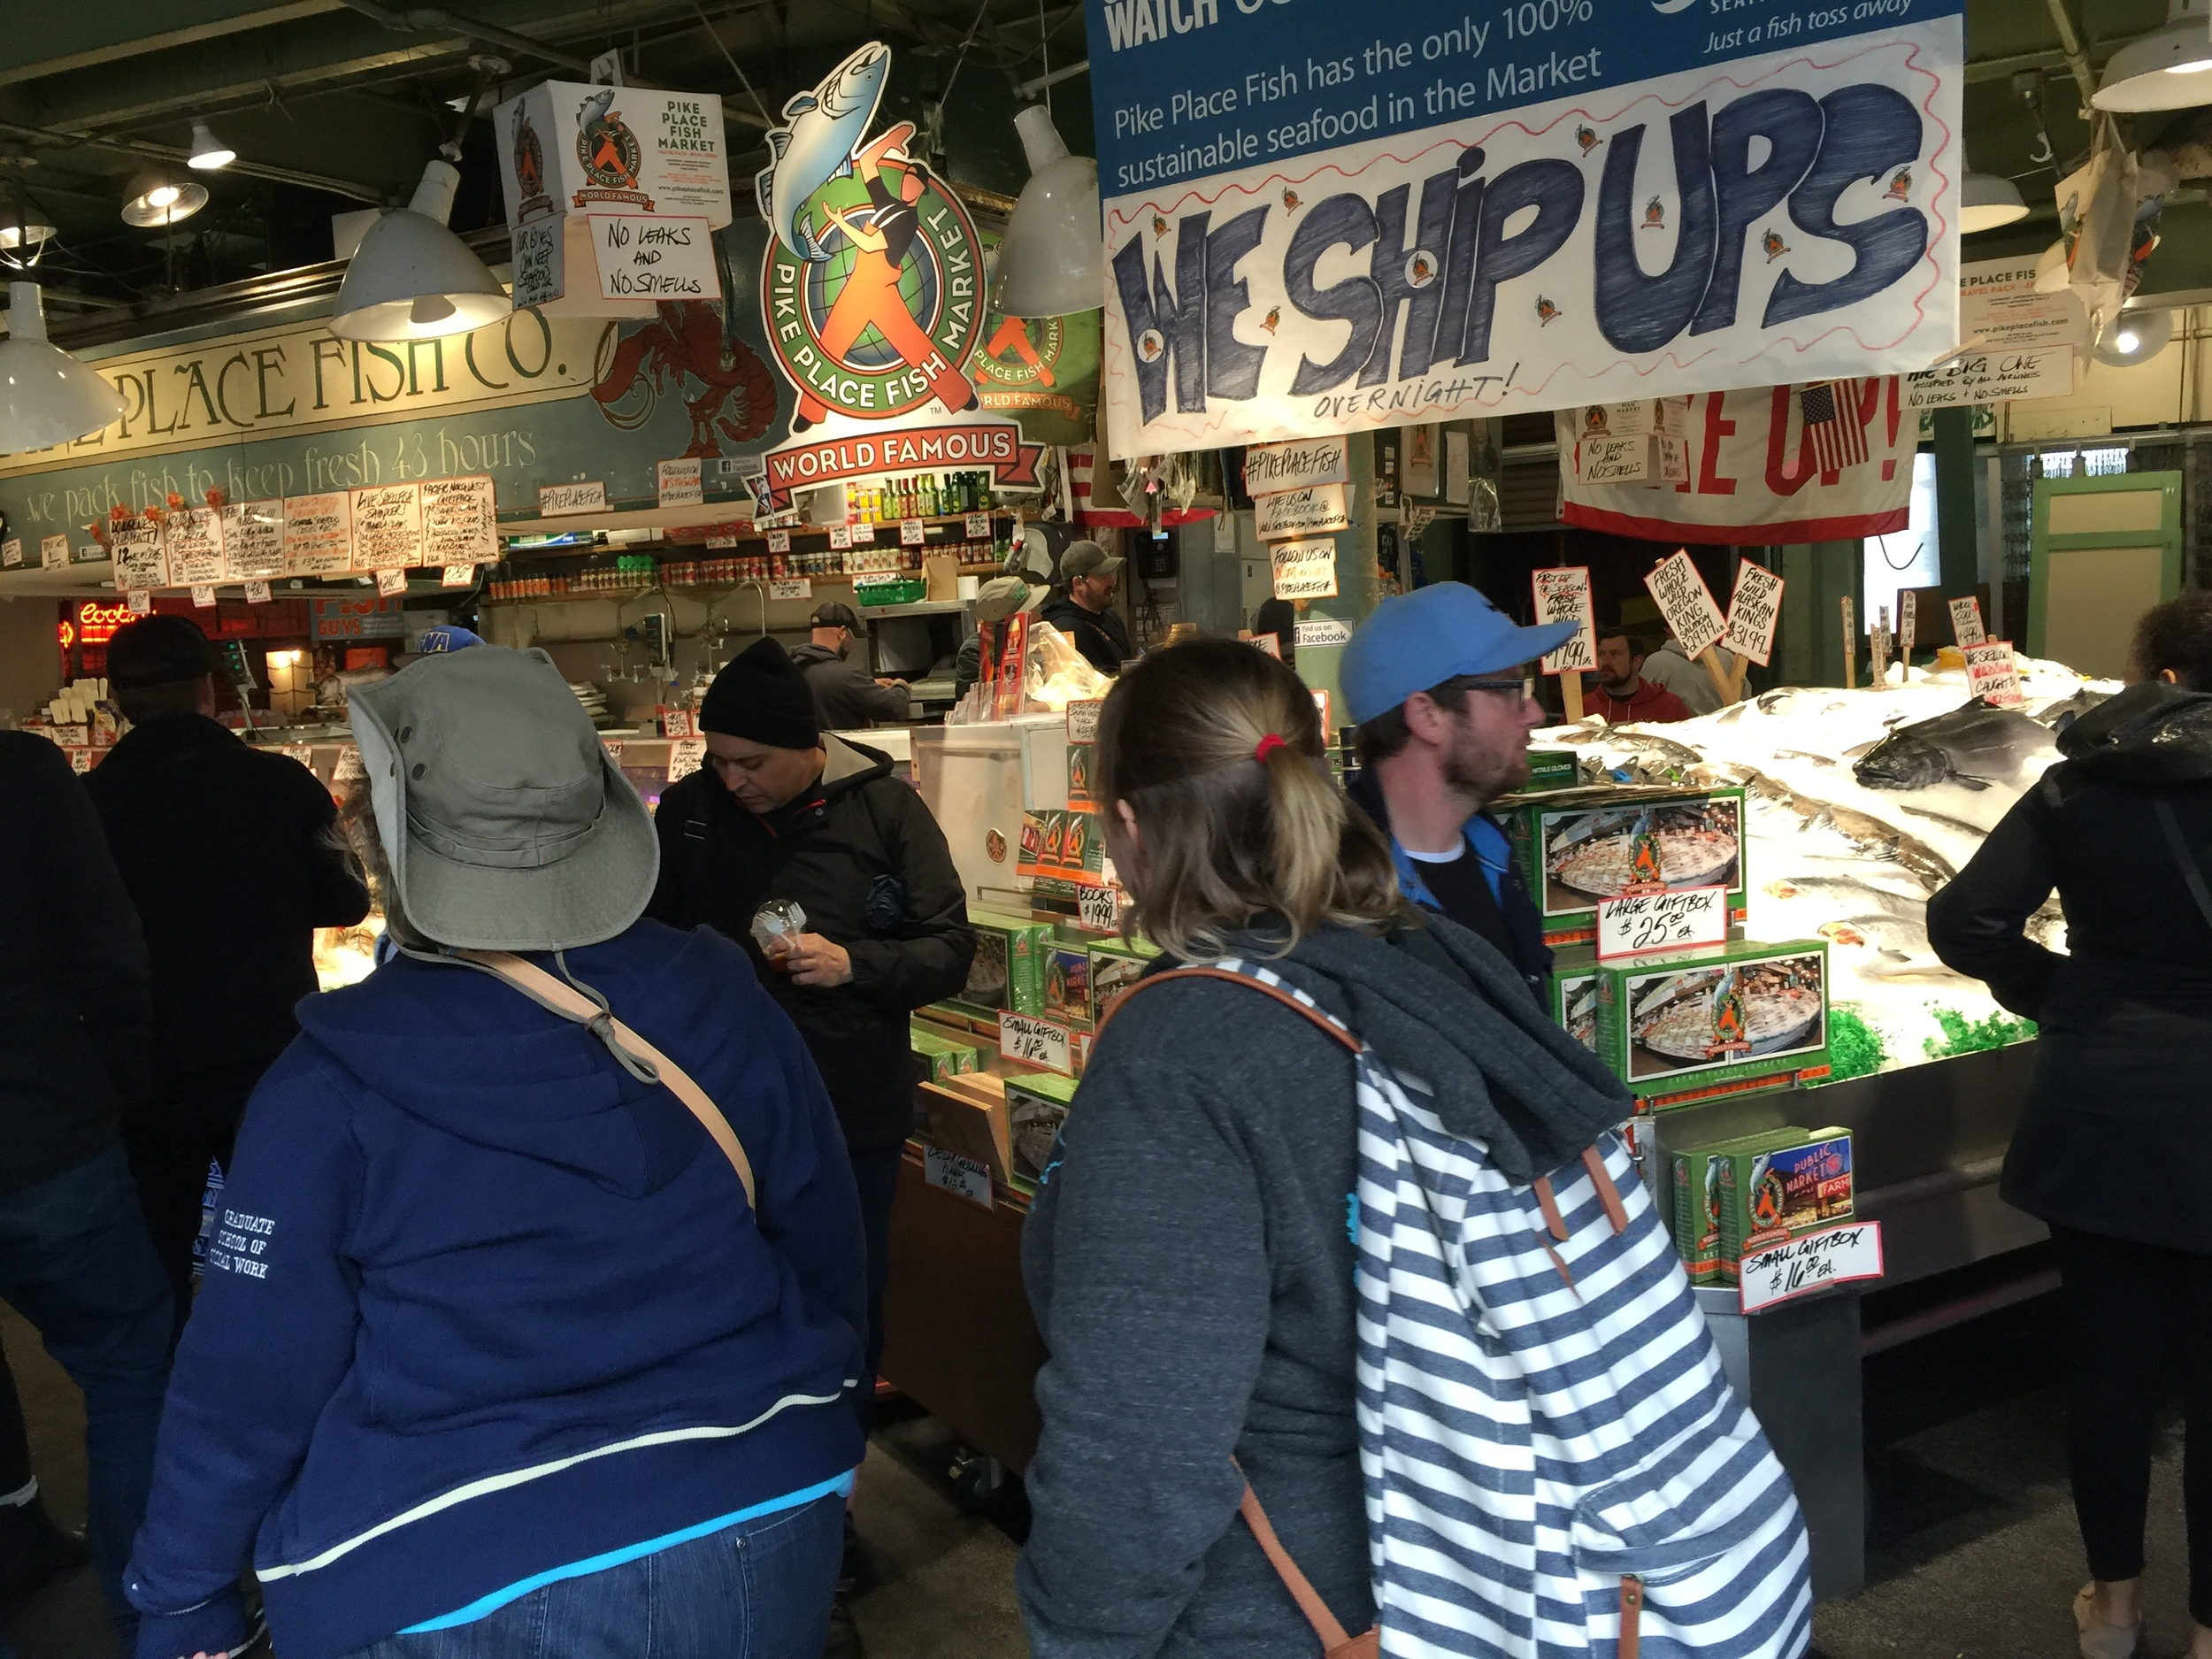 Traveling through Pike Place Market.